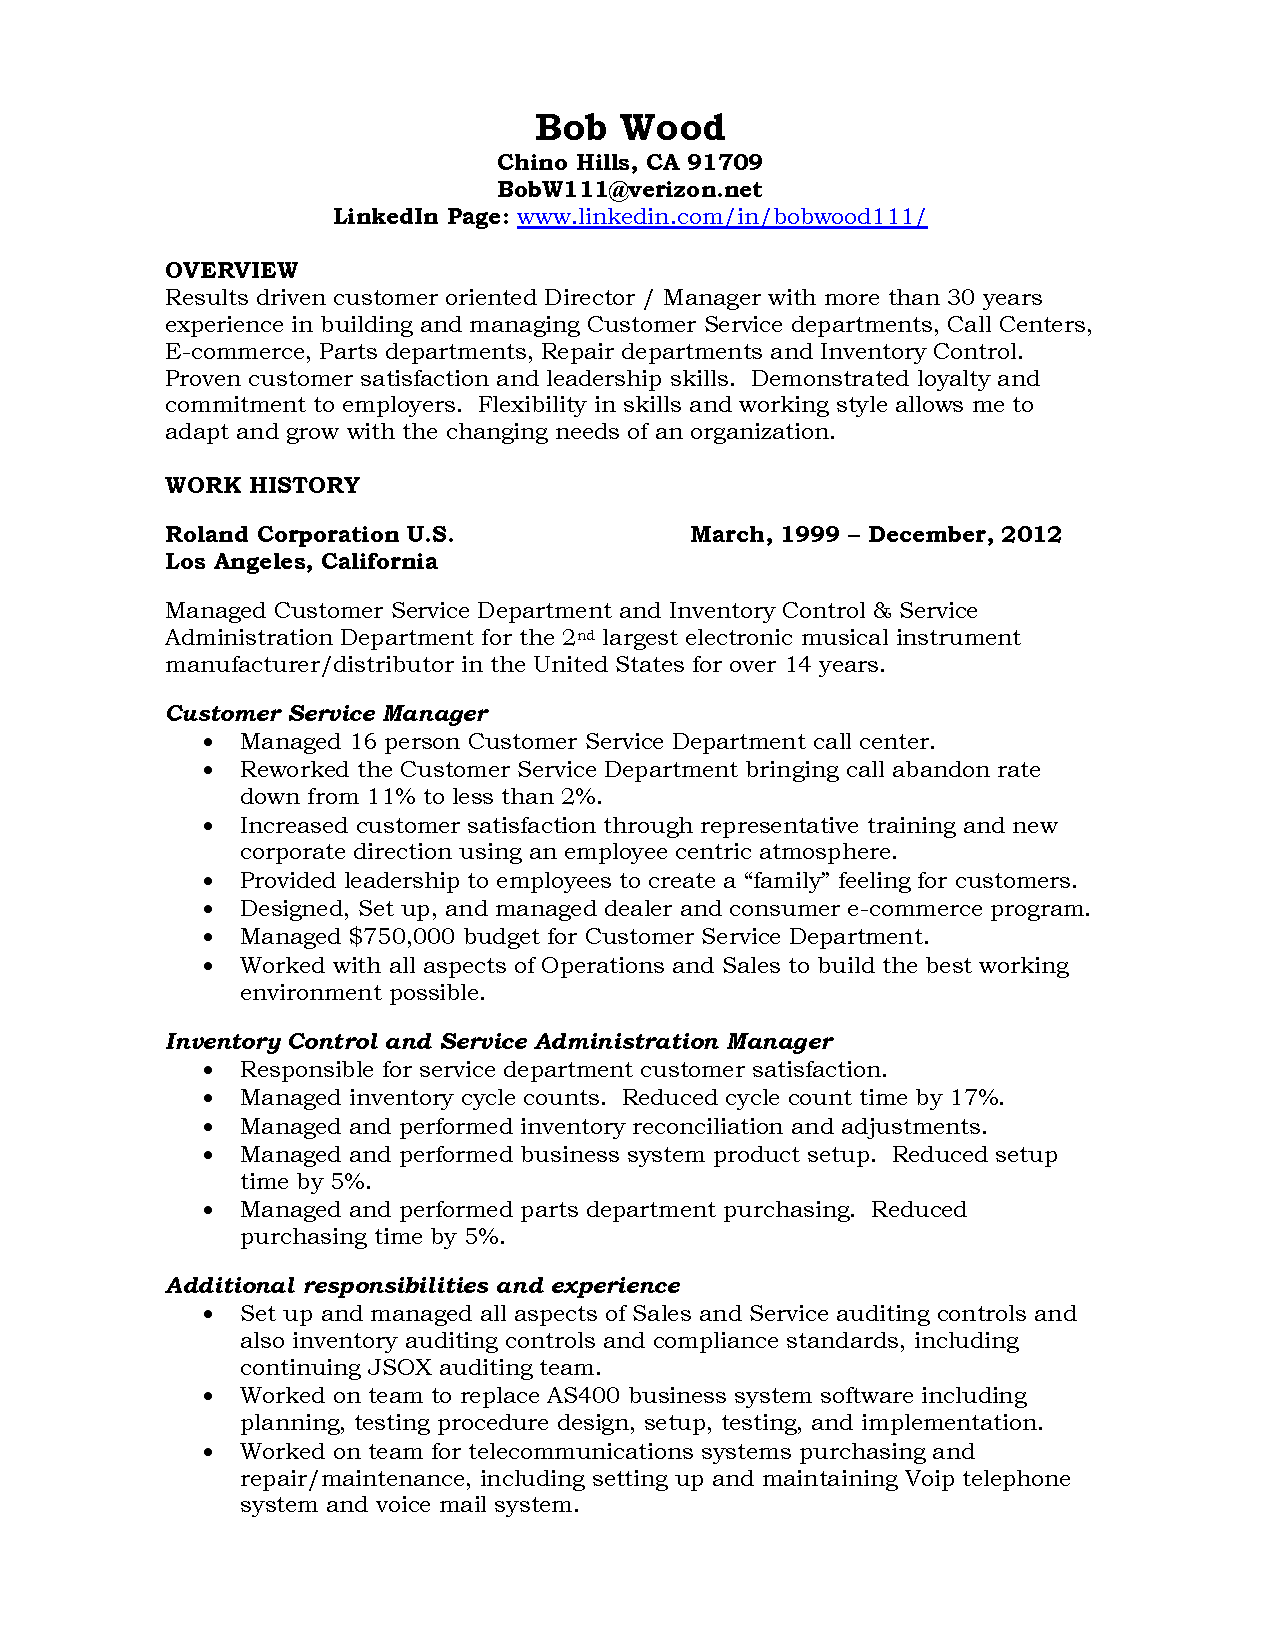 resume of a customer service manager airport customer service resume resume service dallas hotel customer service representative resume casaquadro com